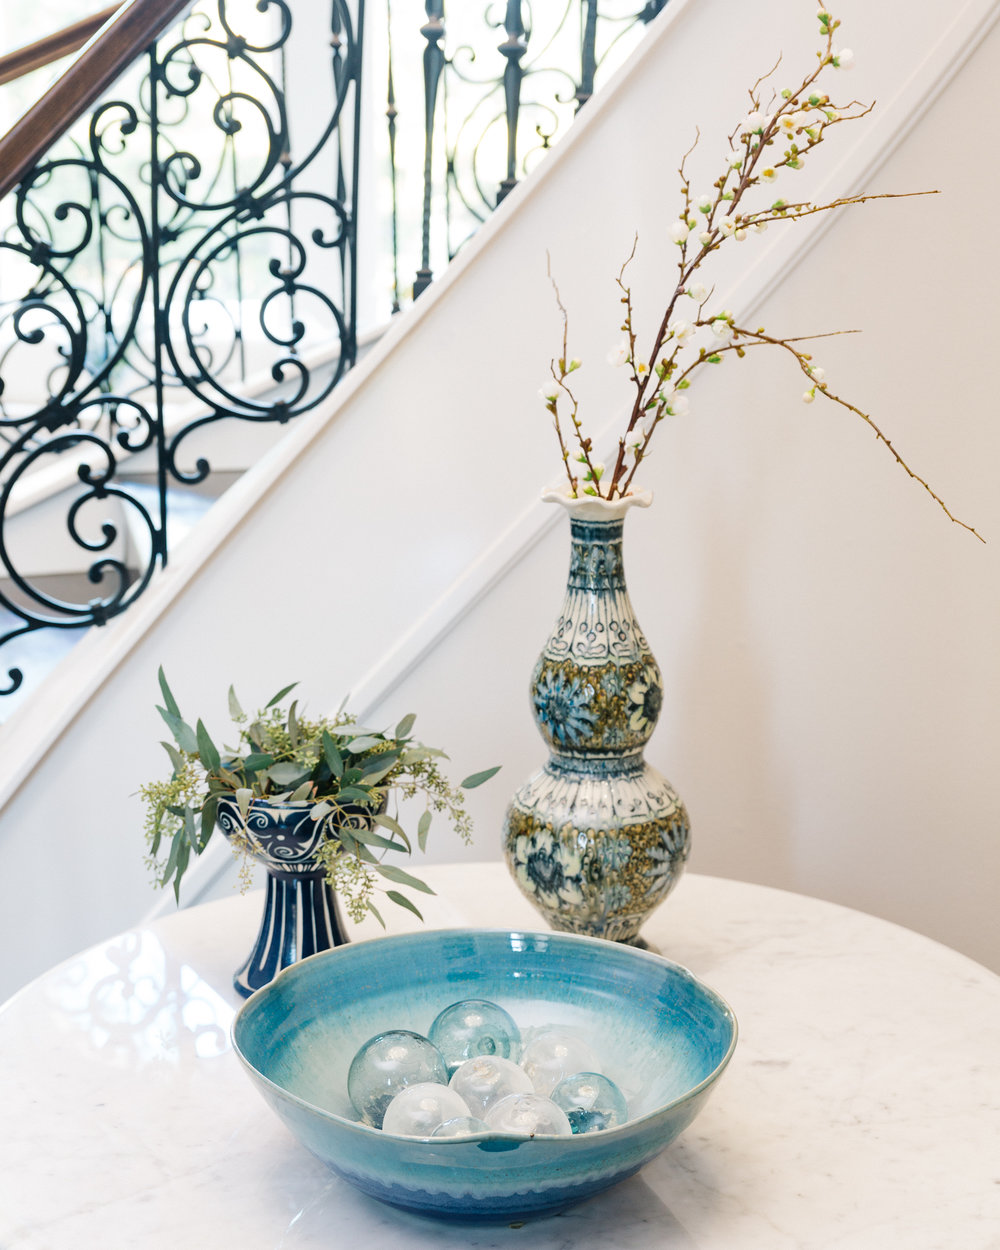 Entry Hall Foyer | Carla Aston - Designer, Shaun Bain - Contractor, Colleen Scott - Photographer #console #foyer #entryhall #foyerideas